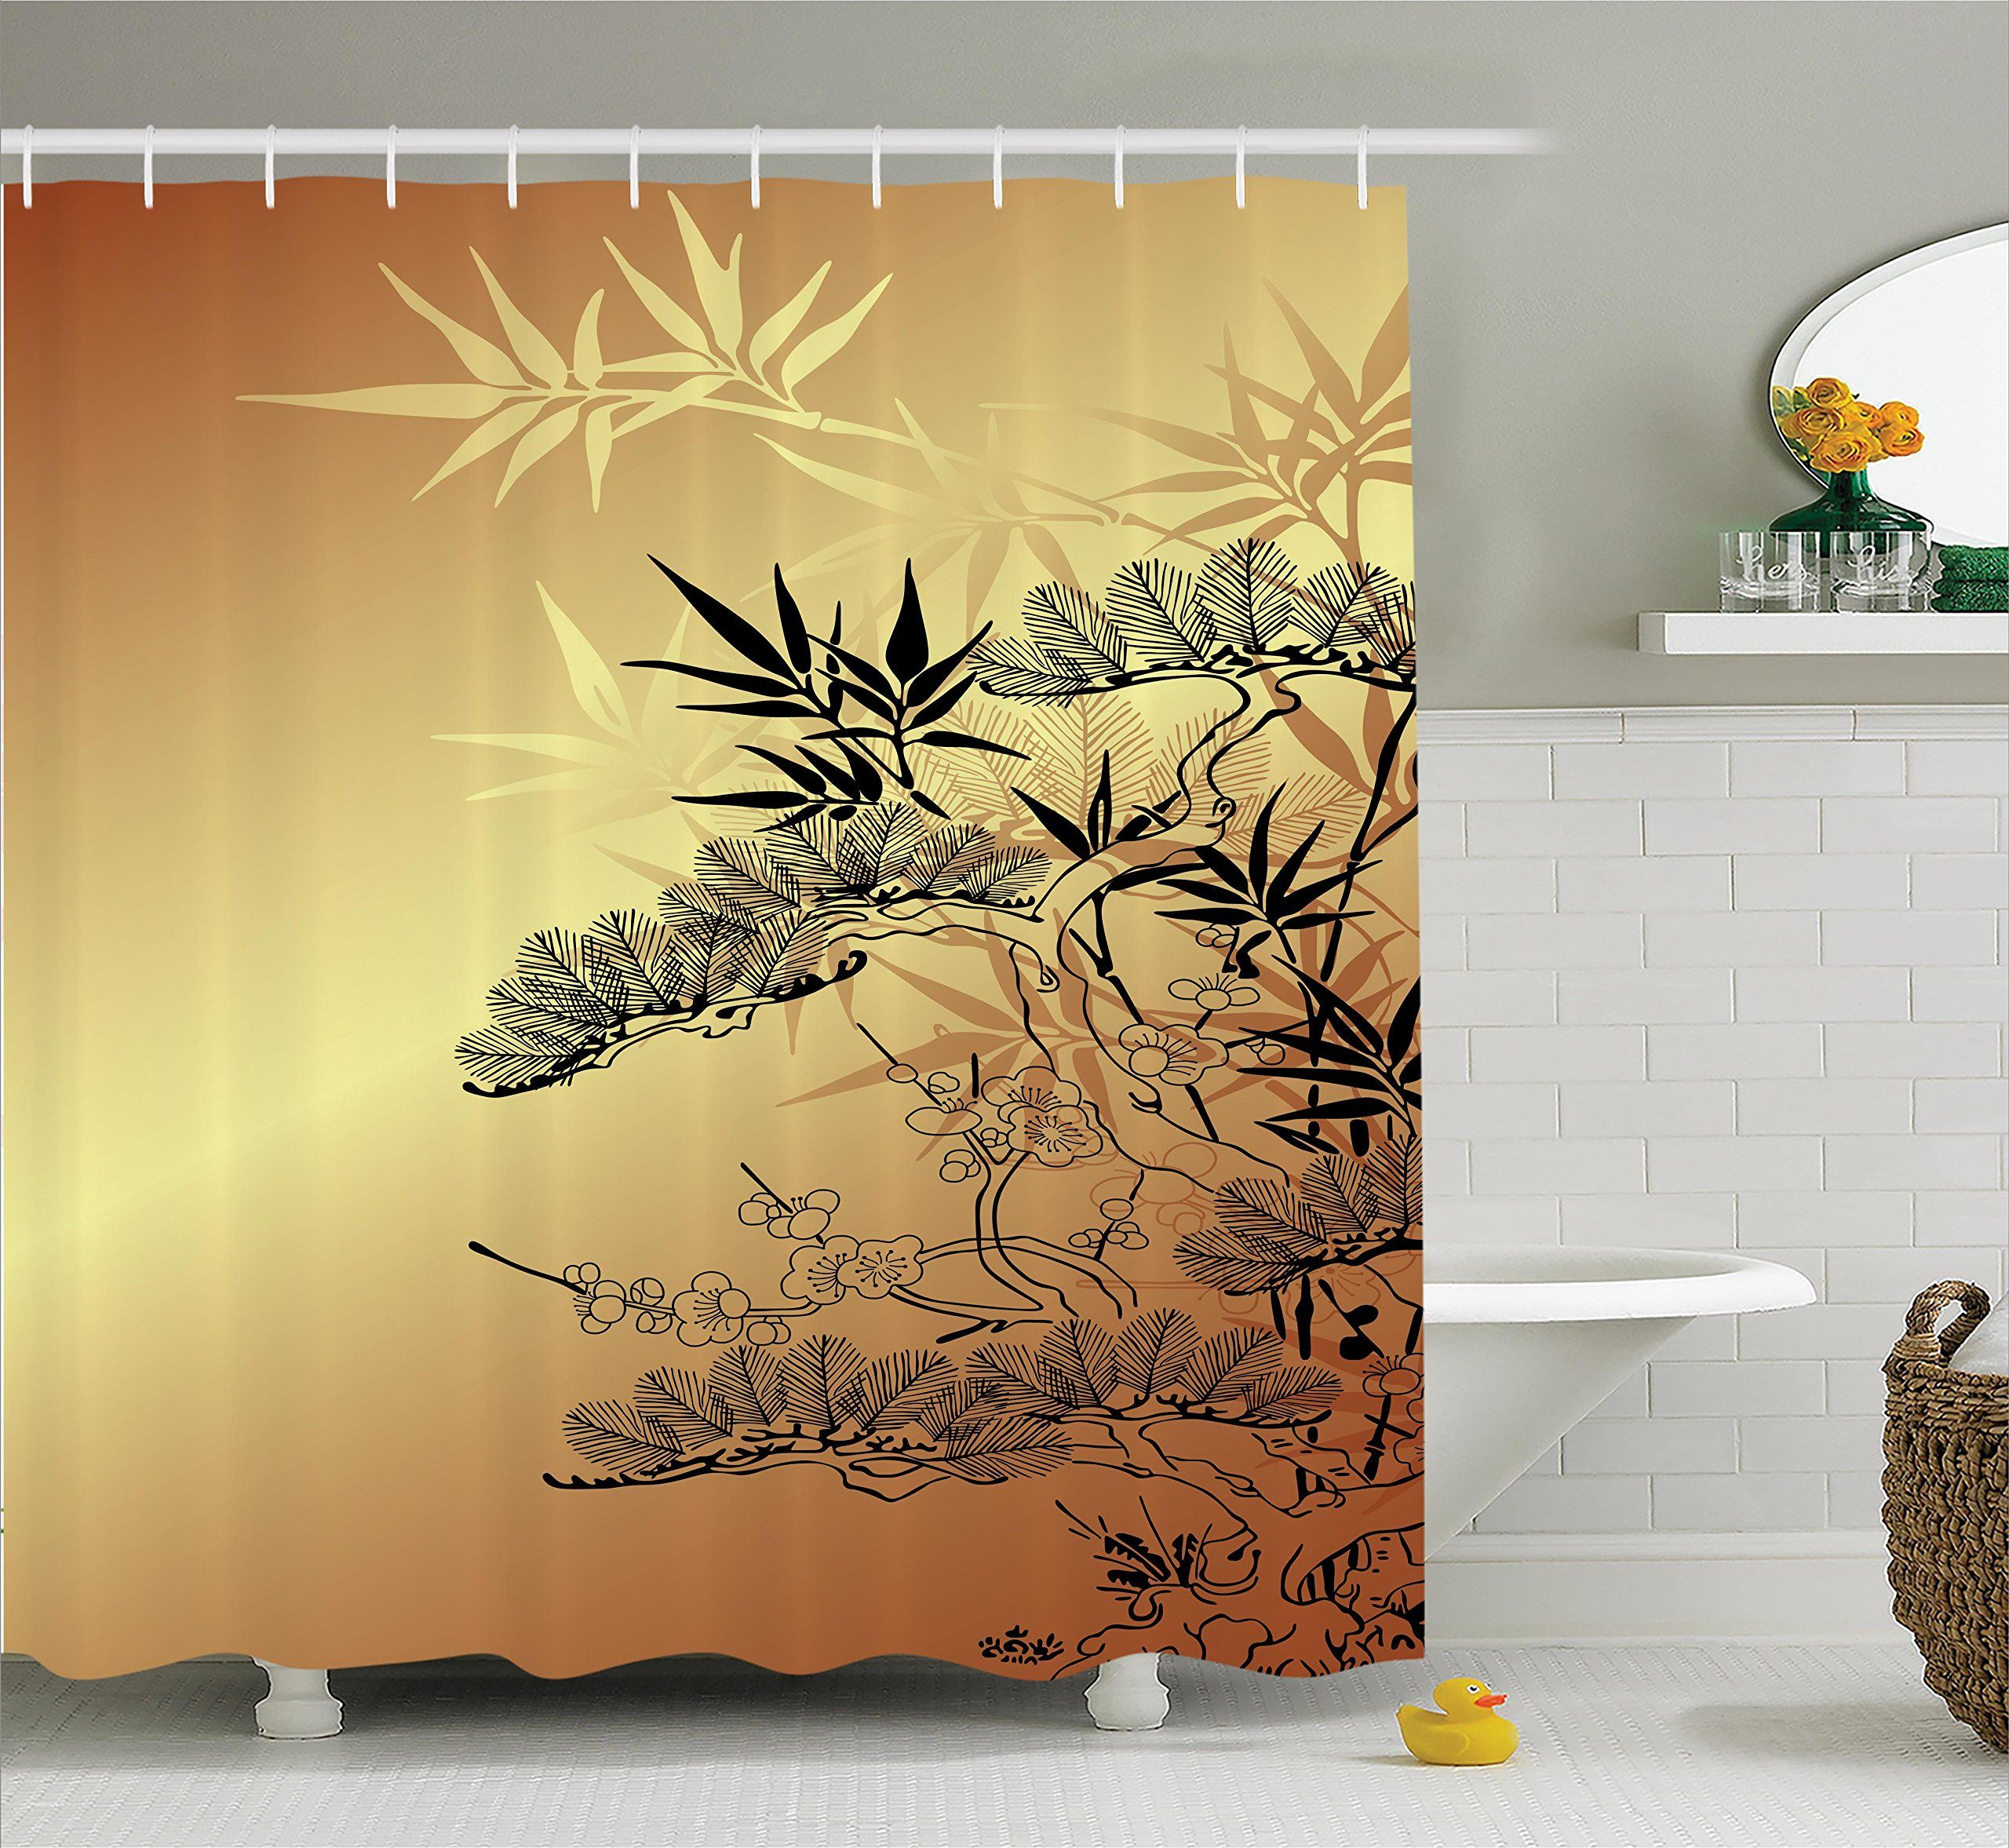 Ambesonne Japanese Decor Shower Curtain Set Asian Style Branches And Bamboo Motifs With Showy Fragrant Leaves Nature Illustration Bathroom Accessories 69W X